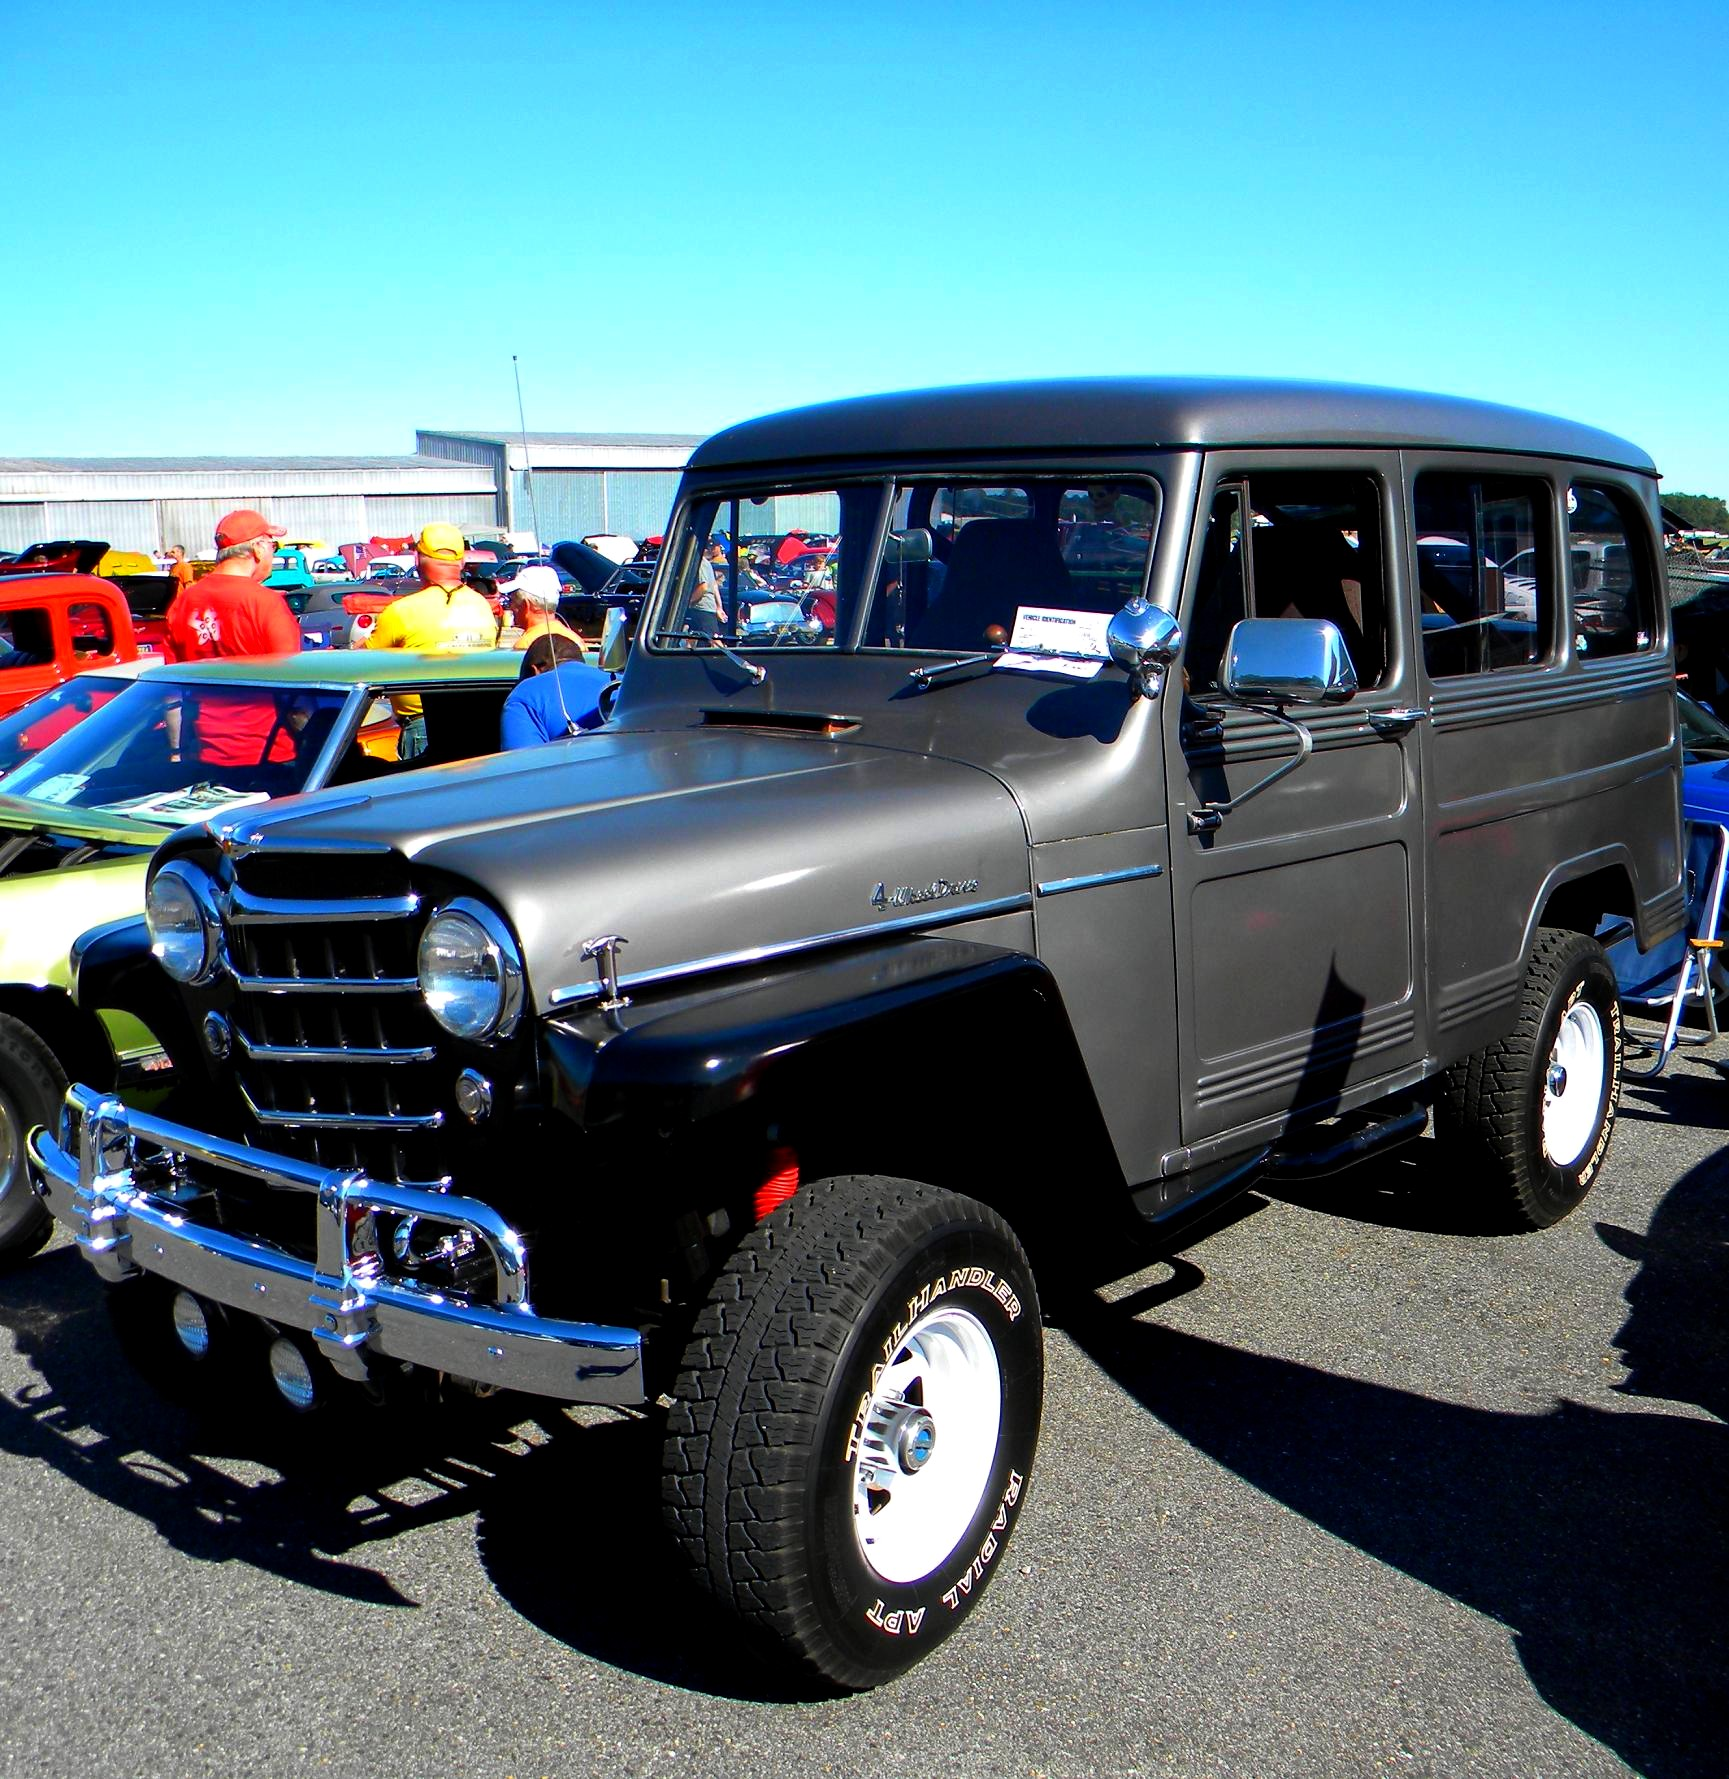 Image 12 Of 50 1963 Willys Jeep Station Wagon For Sale Part 1950 Pickup Truck Filewillys 4x4 Wikimedia Commons